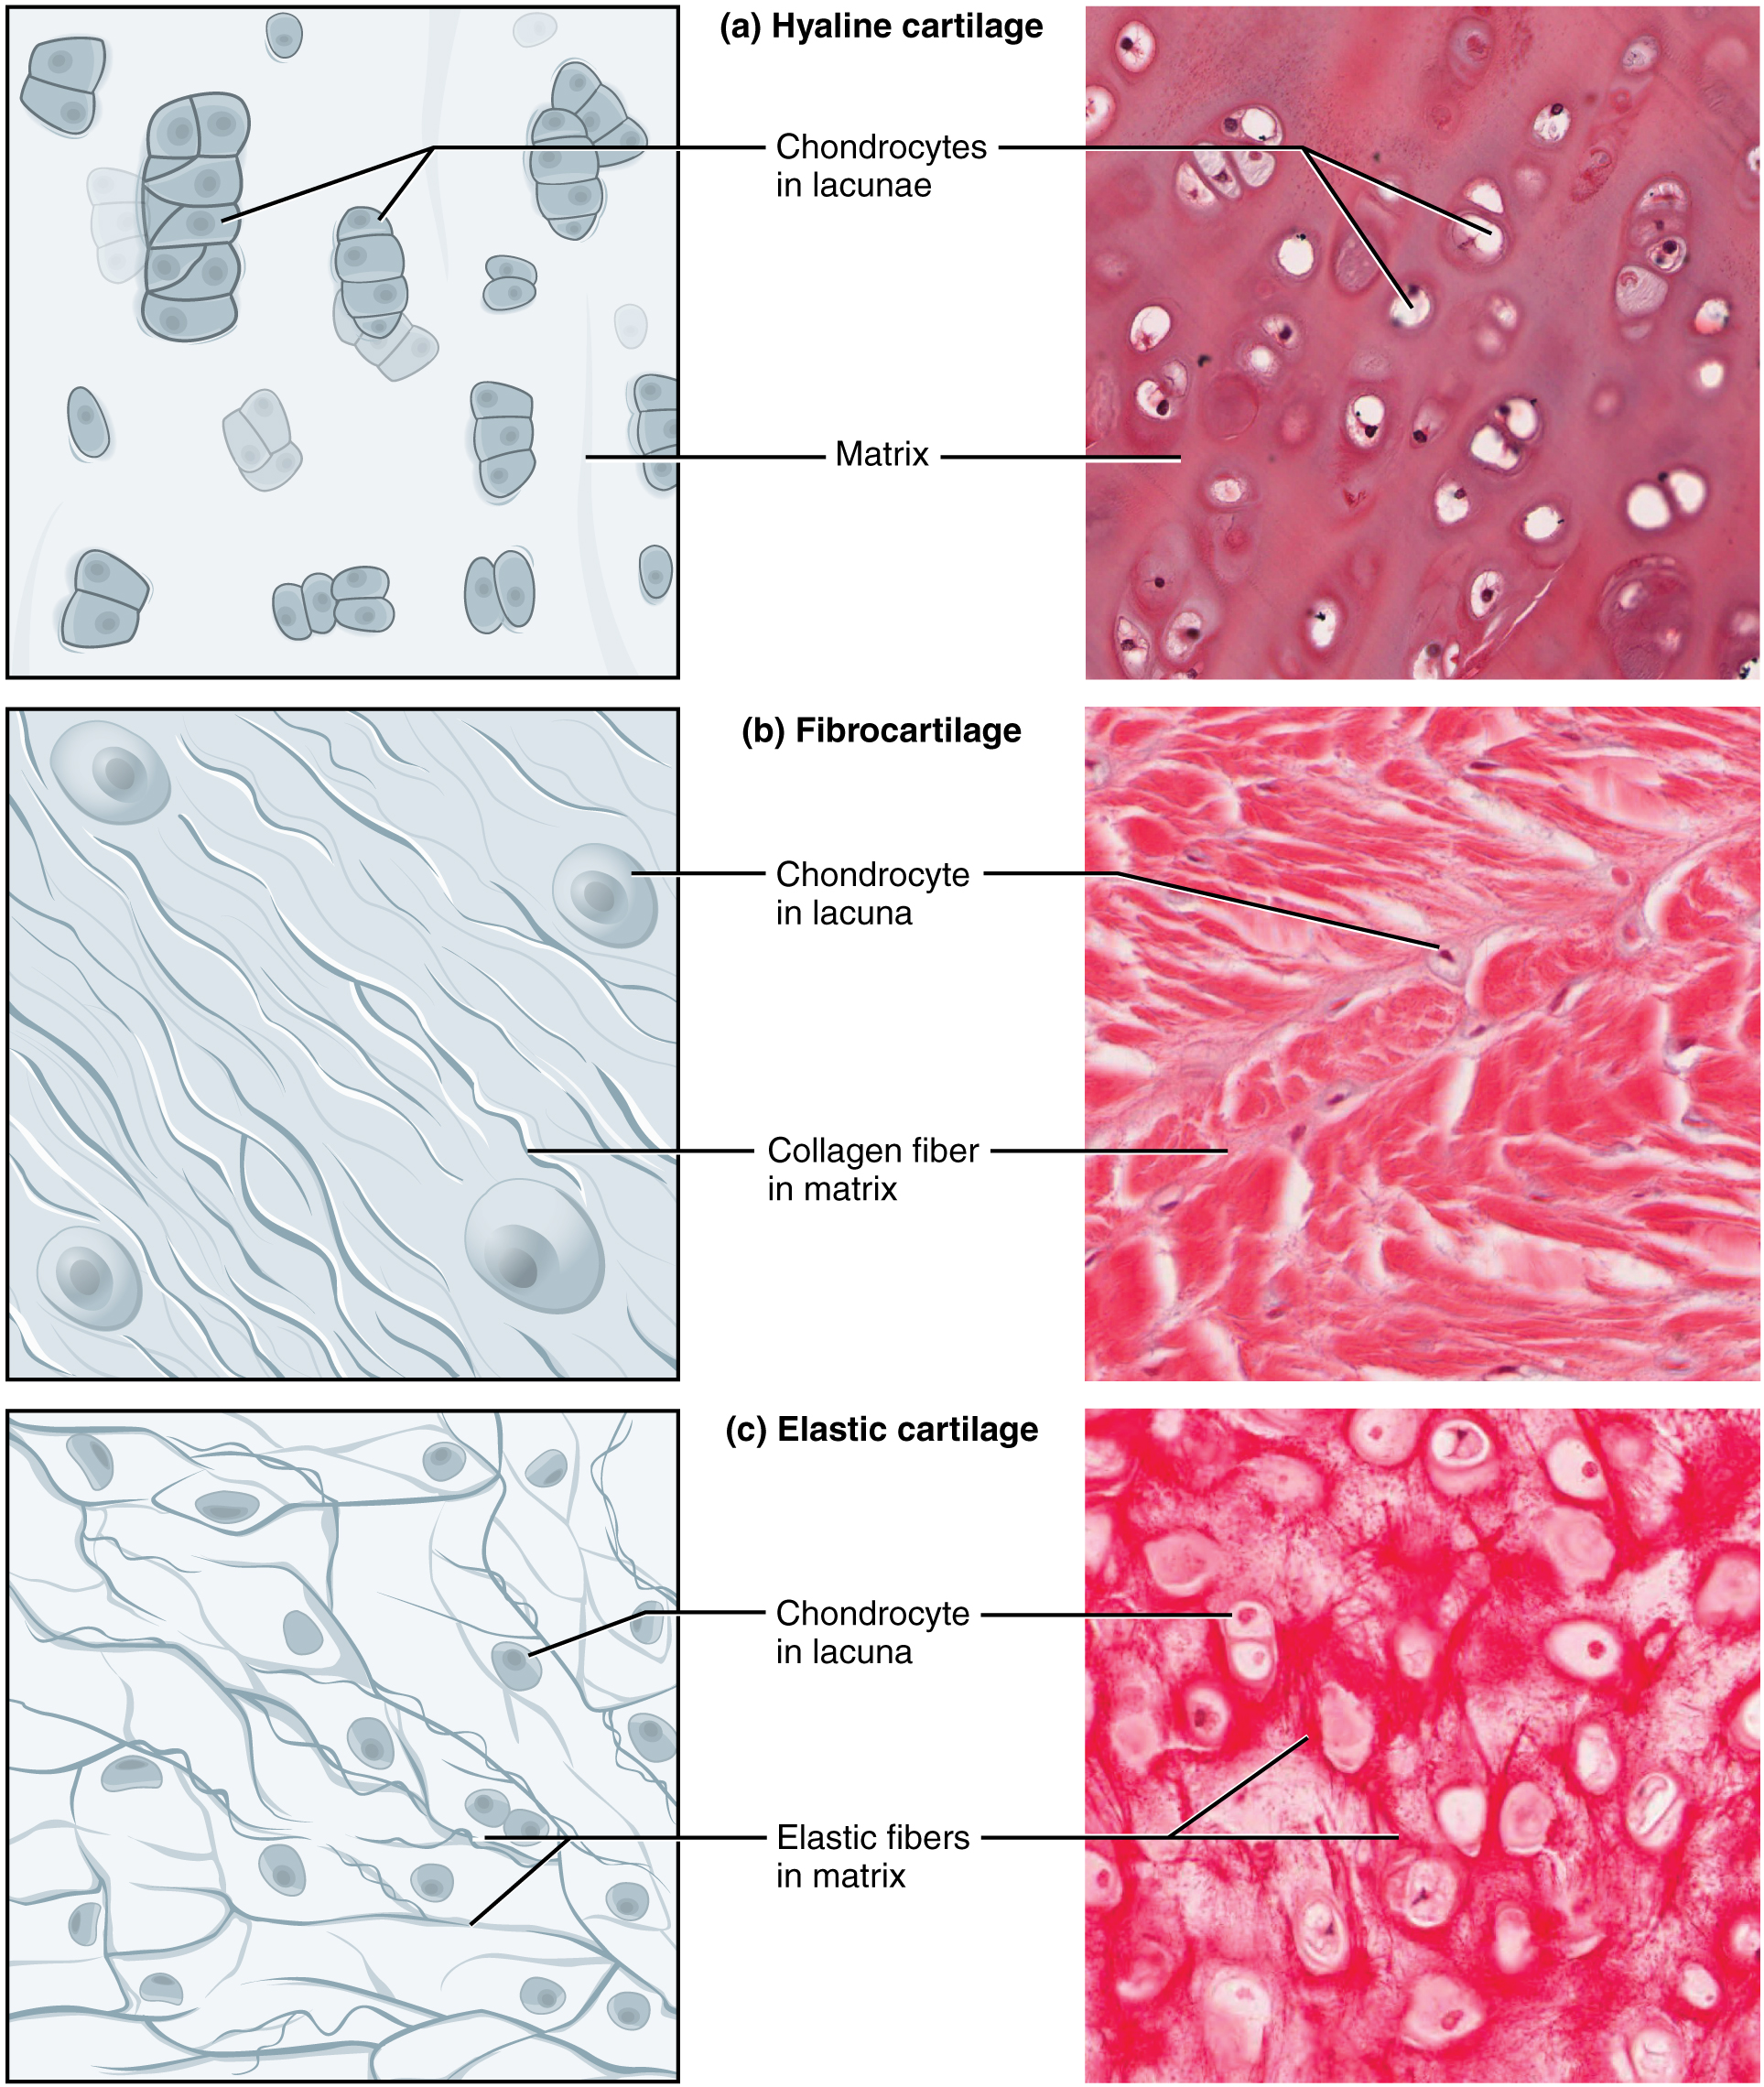 Part A of this diagram is a drawing and a micrograph of hyaline cartilage. The cartilage contains chondrocytes encapsulated in lacunae. Several of the lacunae are joined into groups or small stacks and embedded in the surrounding matrix. The micrograph shows the lacunae as white rings surrounding the purple staining chondrocytes. Some occur as joined pairs while others are embedded singly within the pink staining matrix. Image B shows a diagram and a micrograph of fibrocartilage that contains many fine collagen fibers embedded in the matrix. The collagen fibers are roughly parallel to each but run through the matrix in a wavy fashion. There are also four round chondrocyte cells embedded within the matrix. In the micrograph, the matrix is shaded red and the collagen fibers are visible in white. The lacunae are clearly visible as a faint purple ring containing several dark purple chondrocytes. Part C shows a diagram and micrograph of elastic cartilage. In the diagram, fine elastic fibers are seen crisscrossing the matrix. Many of the elastic fibers branch off from each other, unlike the collagen fibers depicted in parts A and B. The lacunae are clearly visible as white rings containing stained chondrocytes. The fibers stain deeply in this micrograph and can been seen crisscrossing through the tissue.